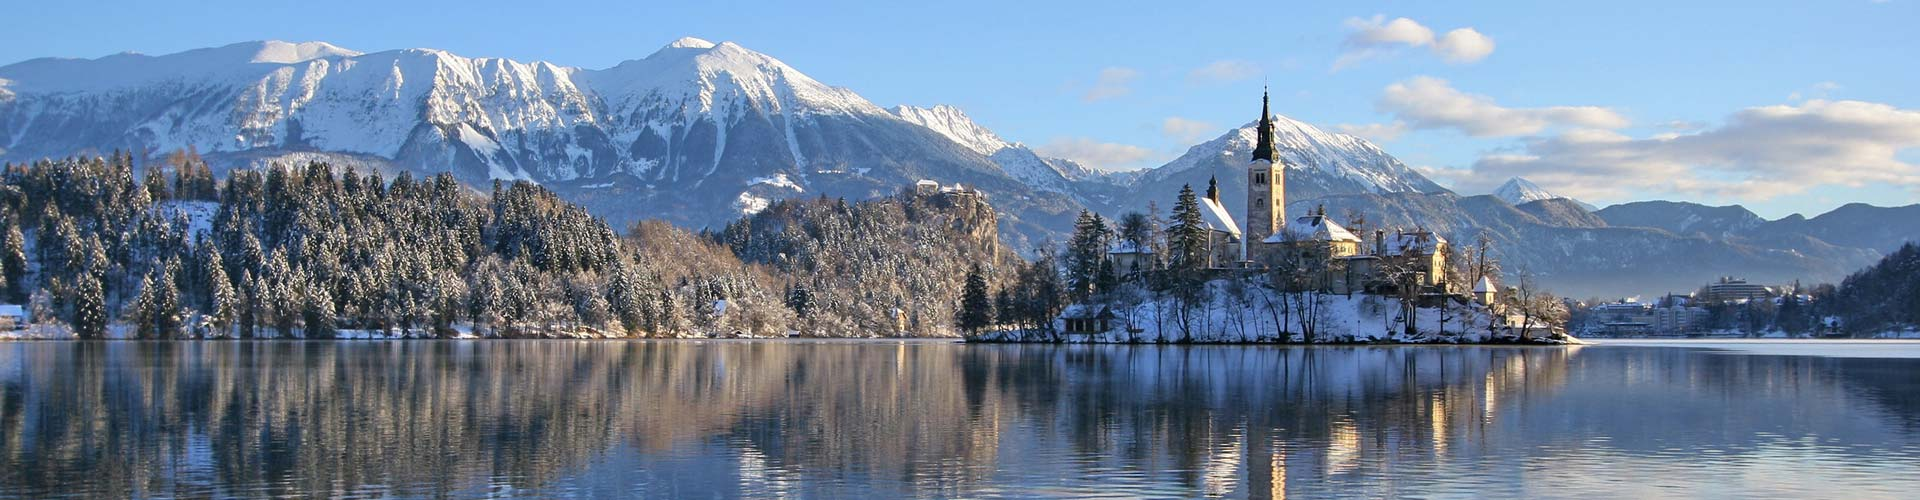 bled_winter